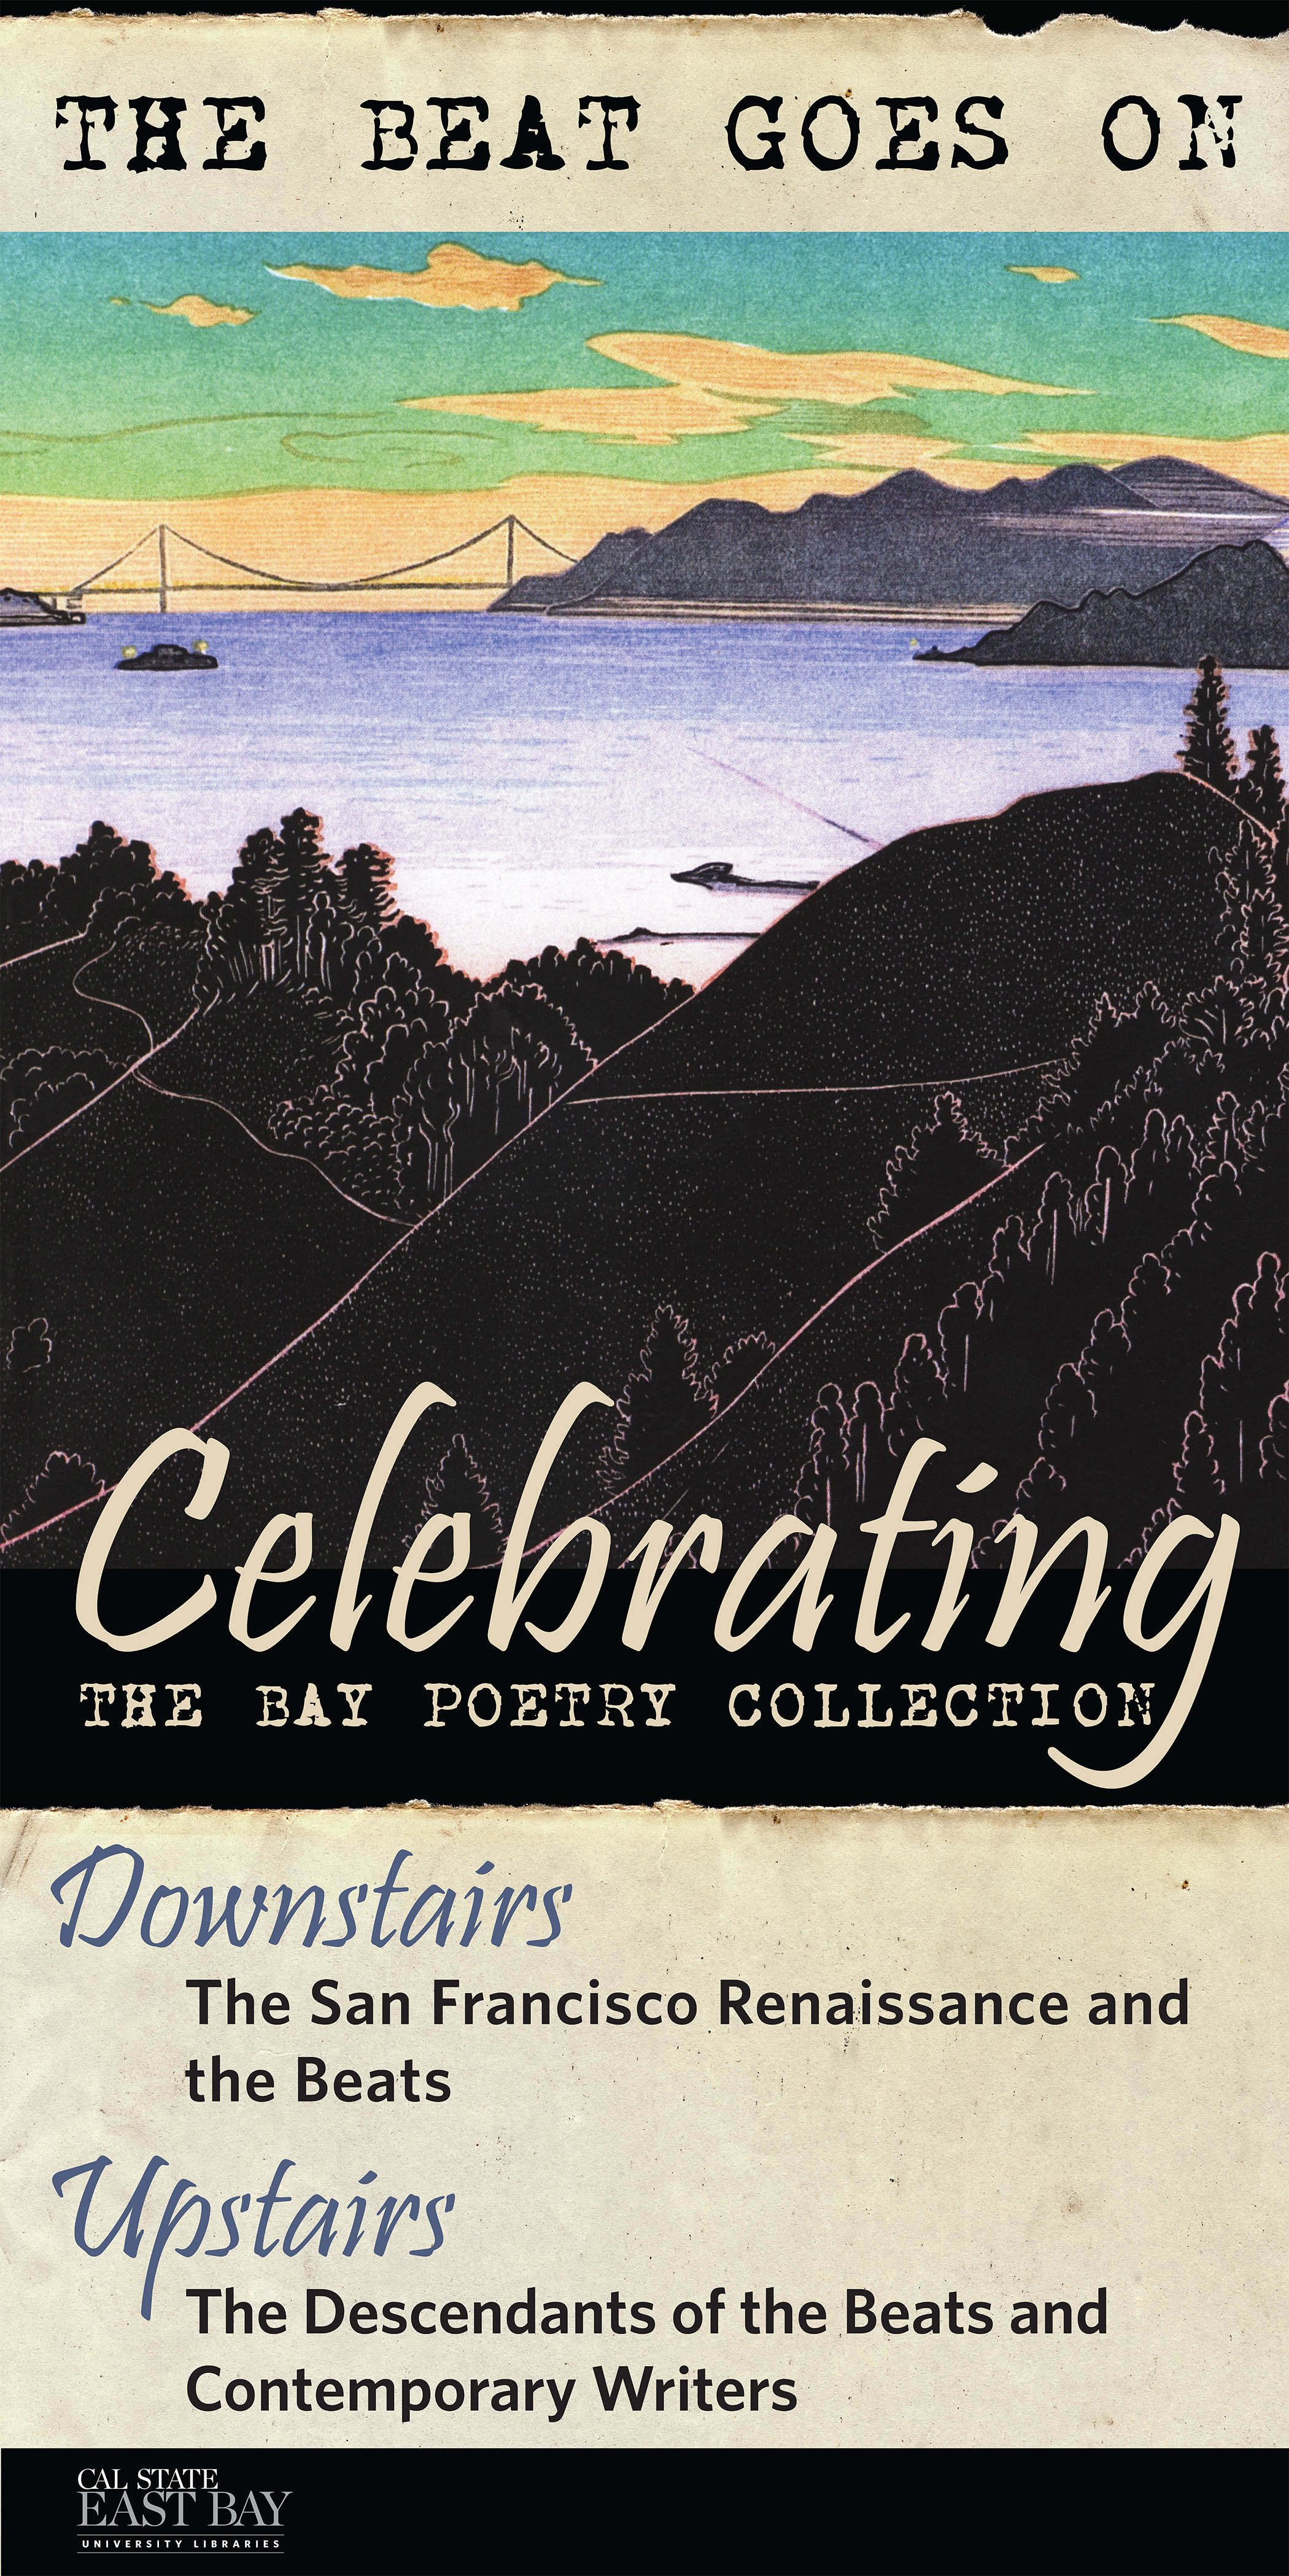 The Beat Goes On Celebrating Bay Poetry Collection